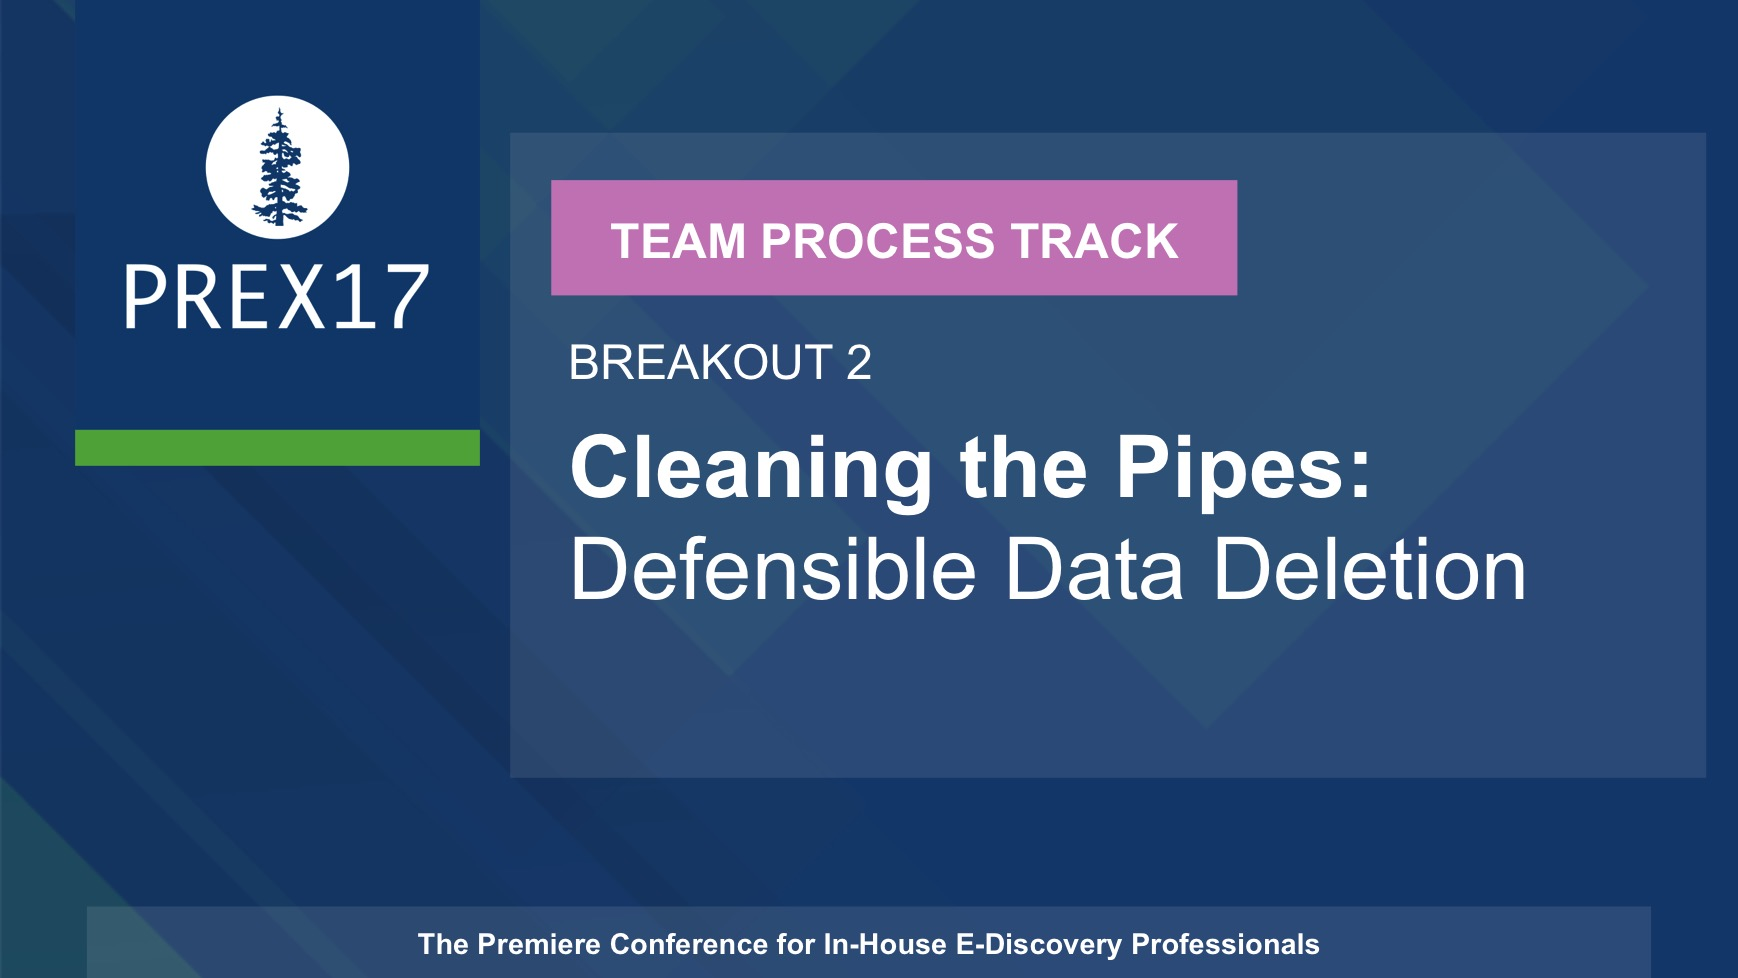 (Breakout 2 - Team Process) Cleaning the Pipes: Defensible Data Deletion